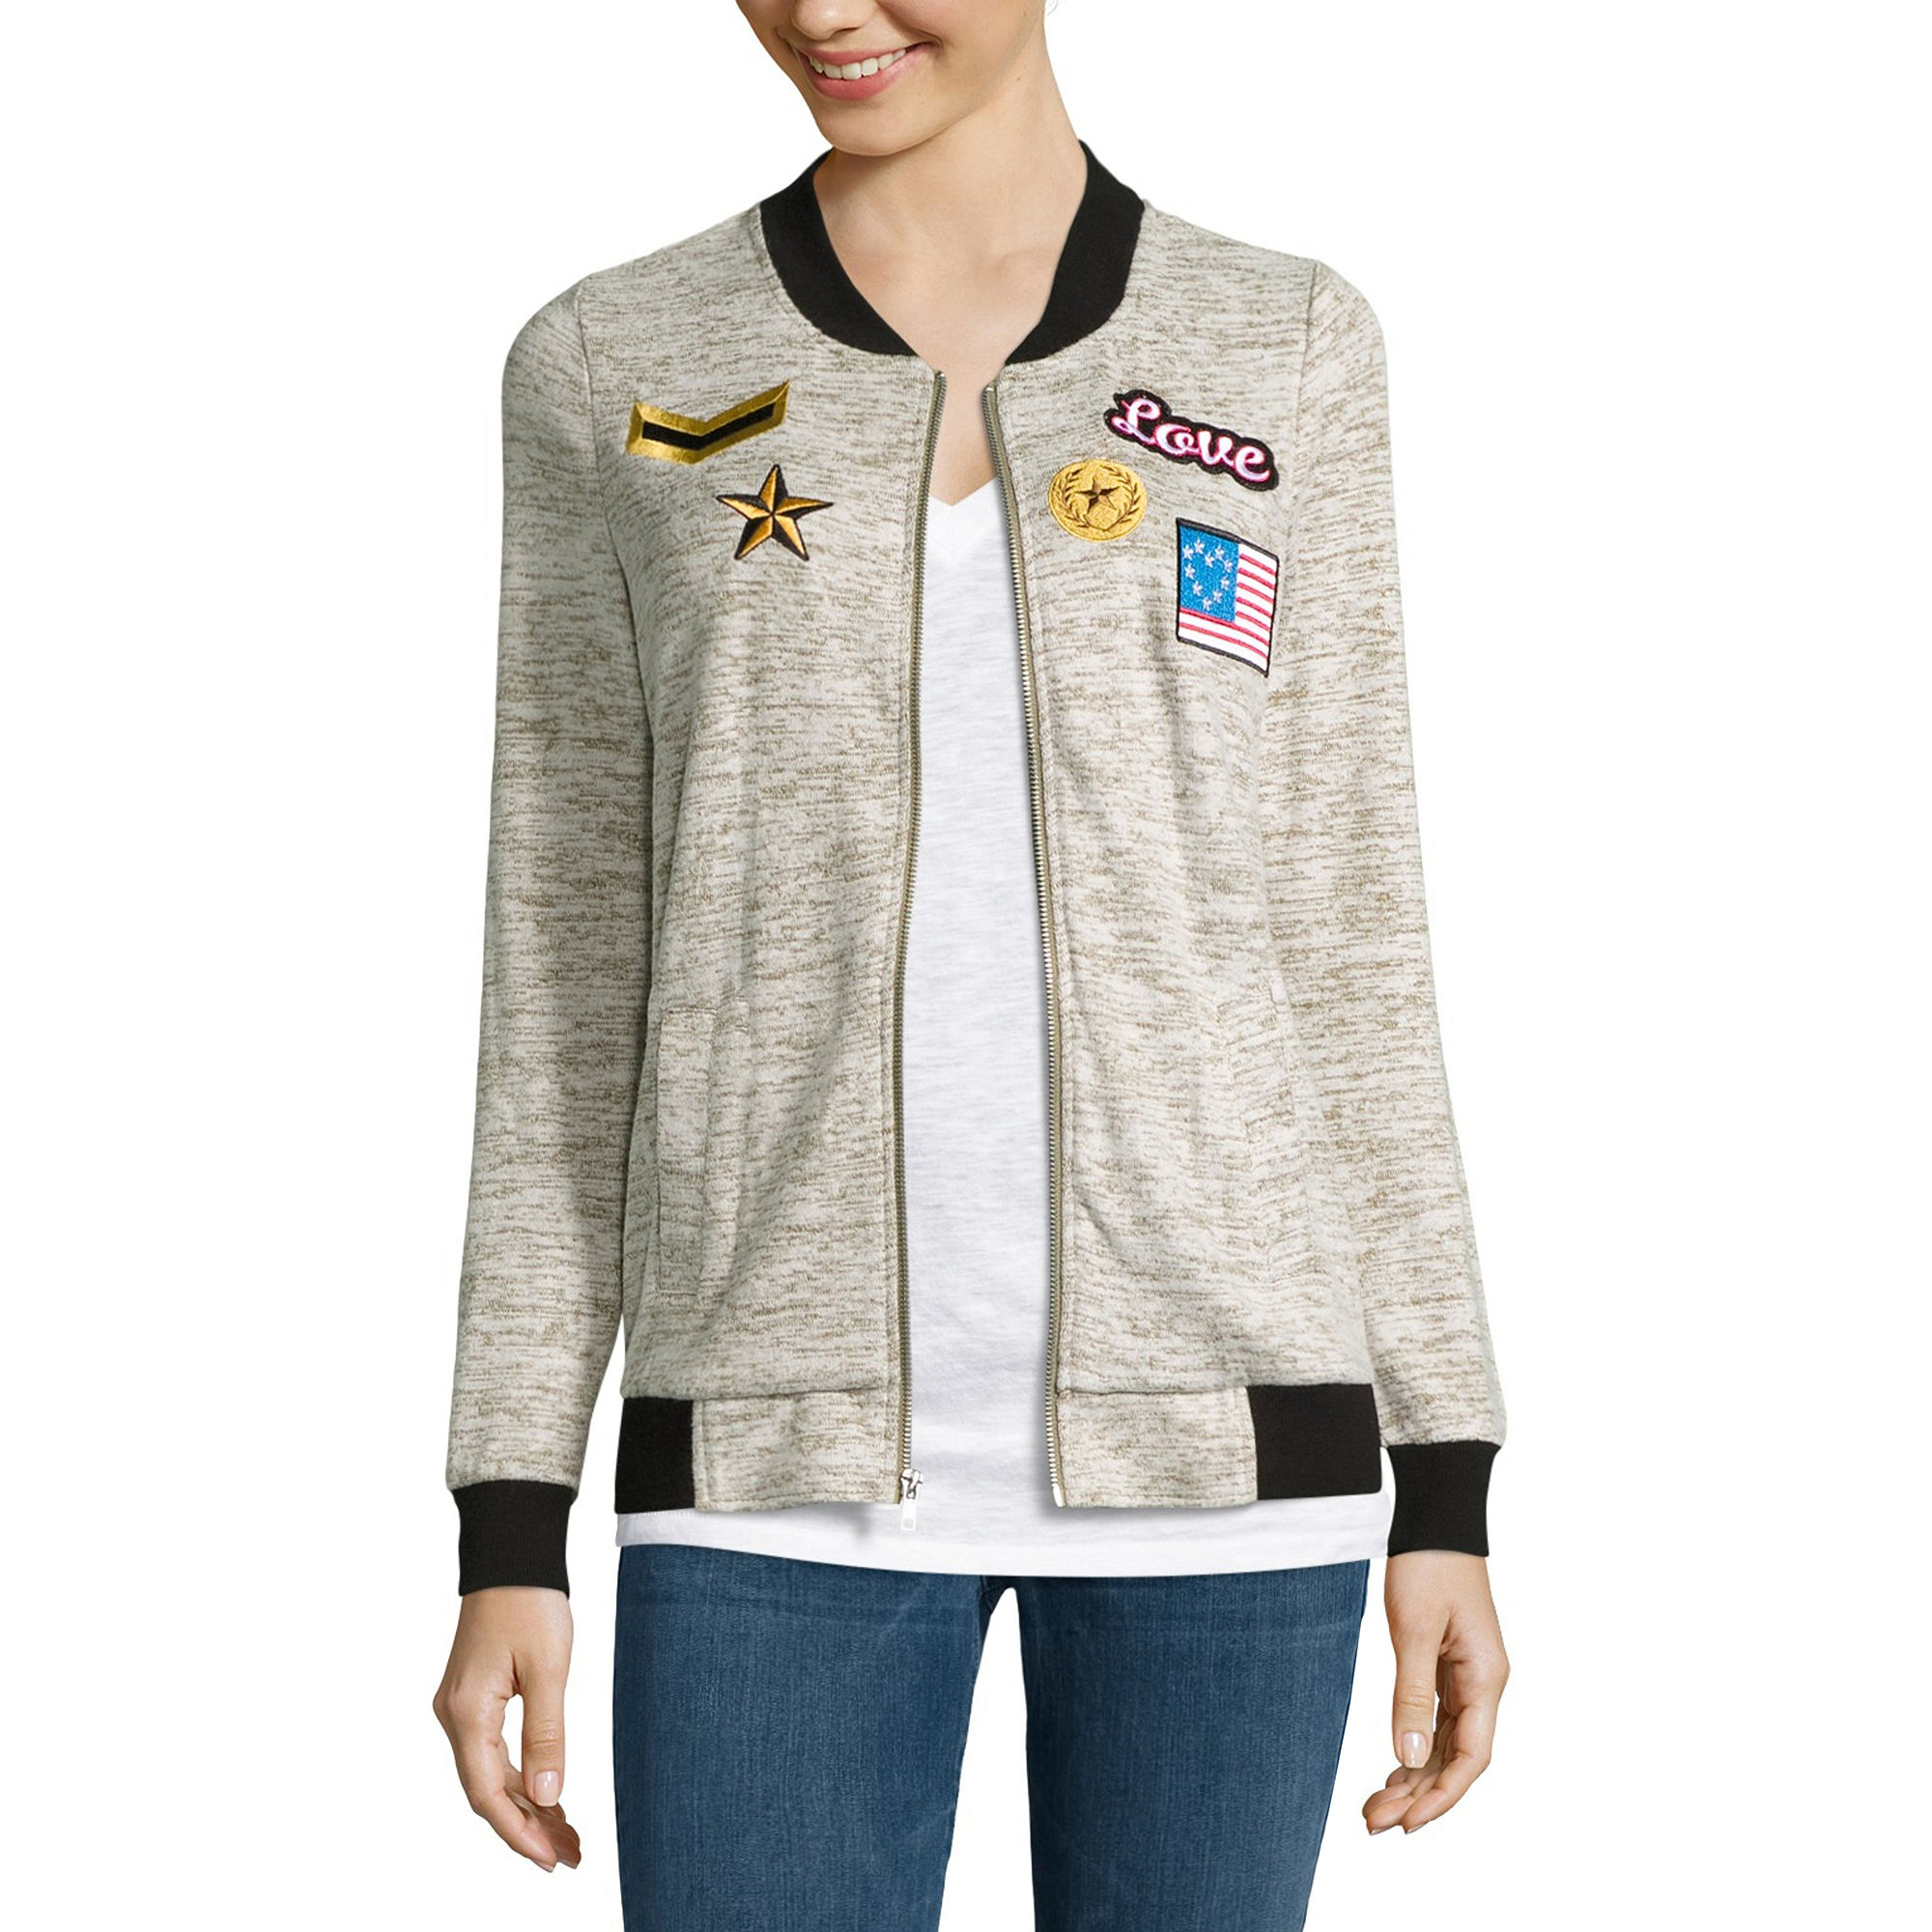 Miss Chievous Miss Chevious Long Sleeve Patch Bomber Jacket Juniors | Coat, Jacket and Clothing